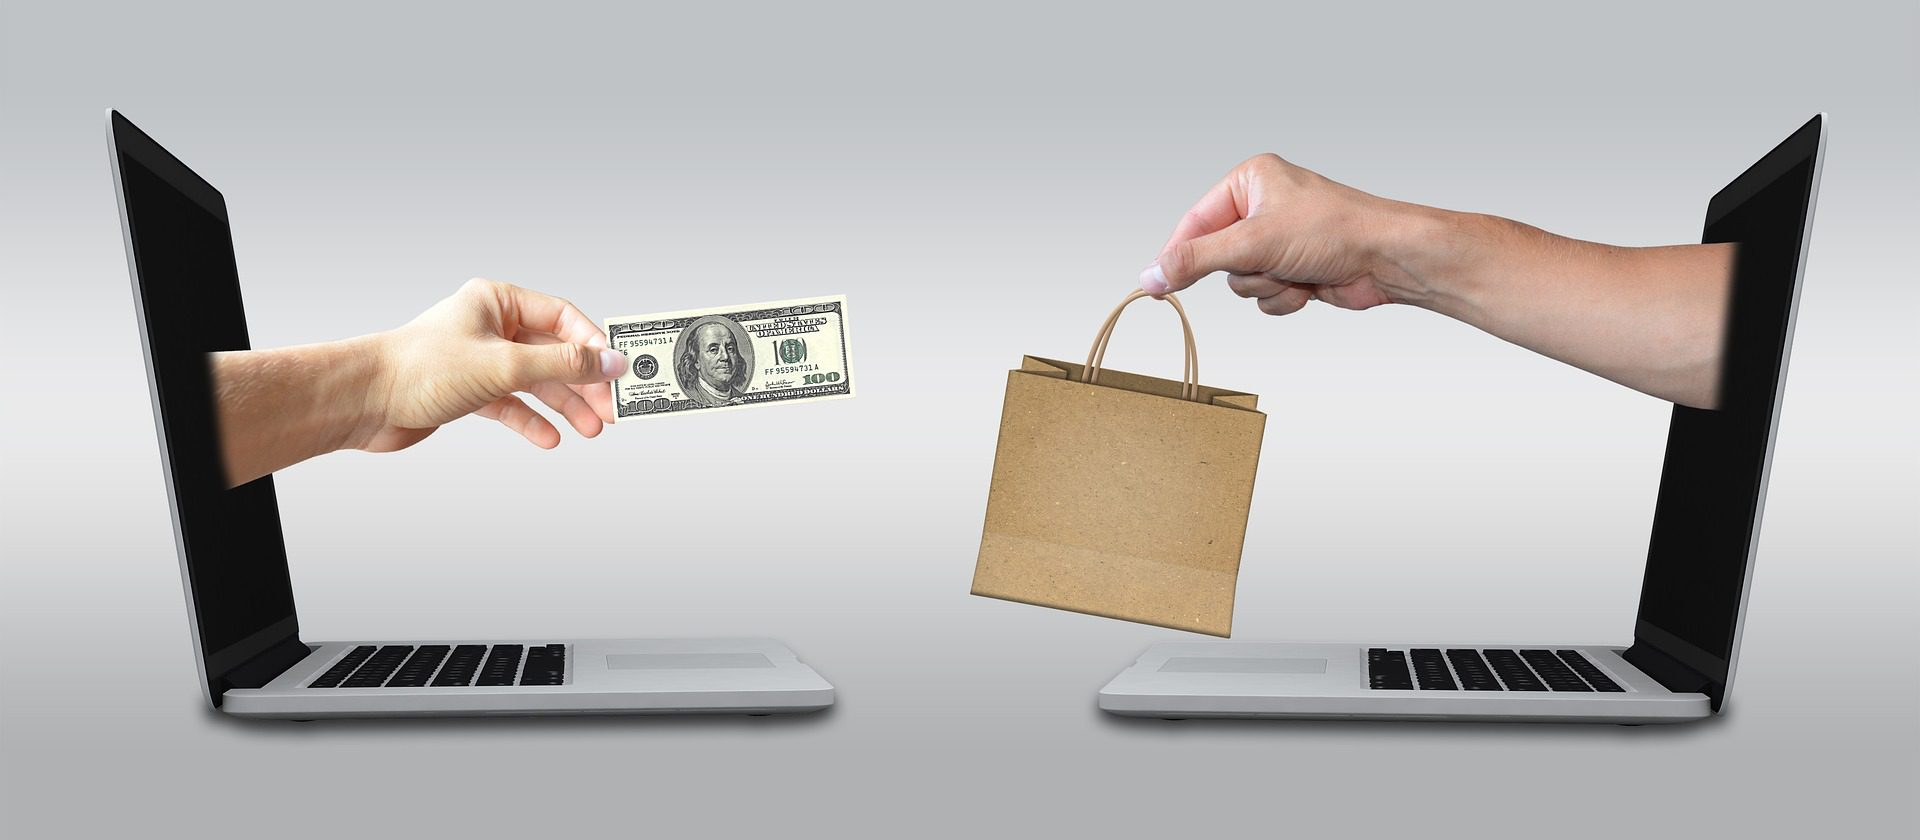 Hands with money and shopping bag coming out of two laptops